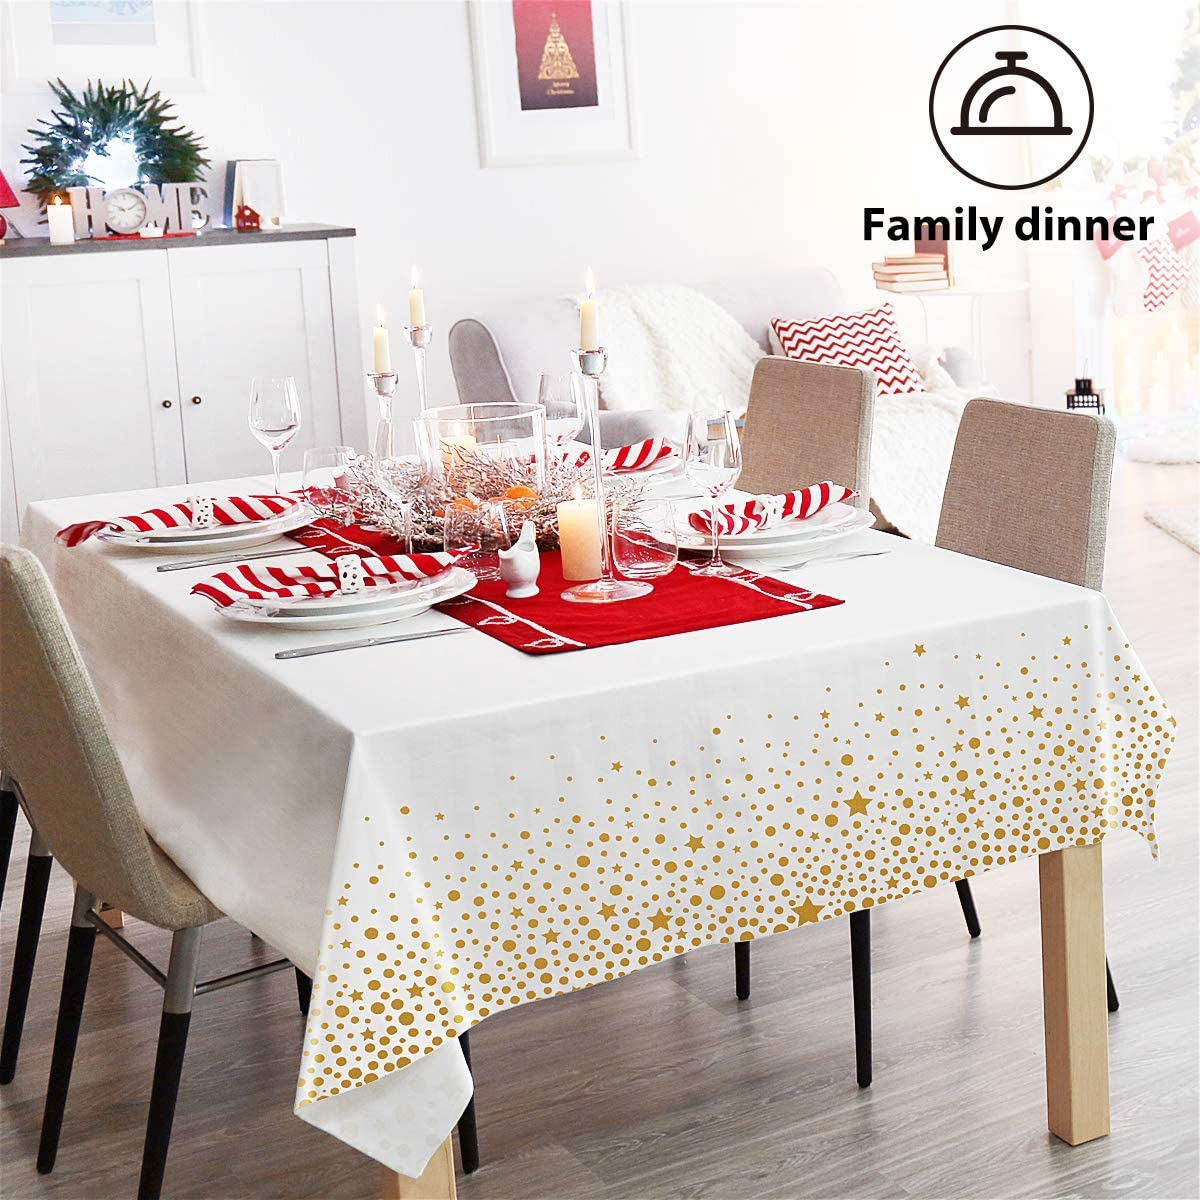 Plastic Tablecloths Gold Tablecloth for Rectangle Tables, 4 Pack Party Table Cloths Disposable for Parties, Outdoors, Anniversary